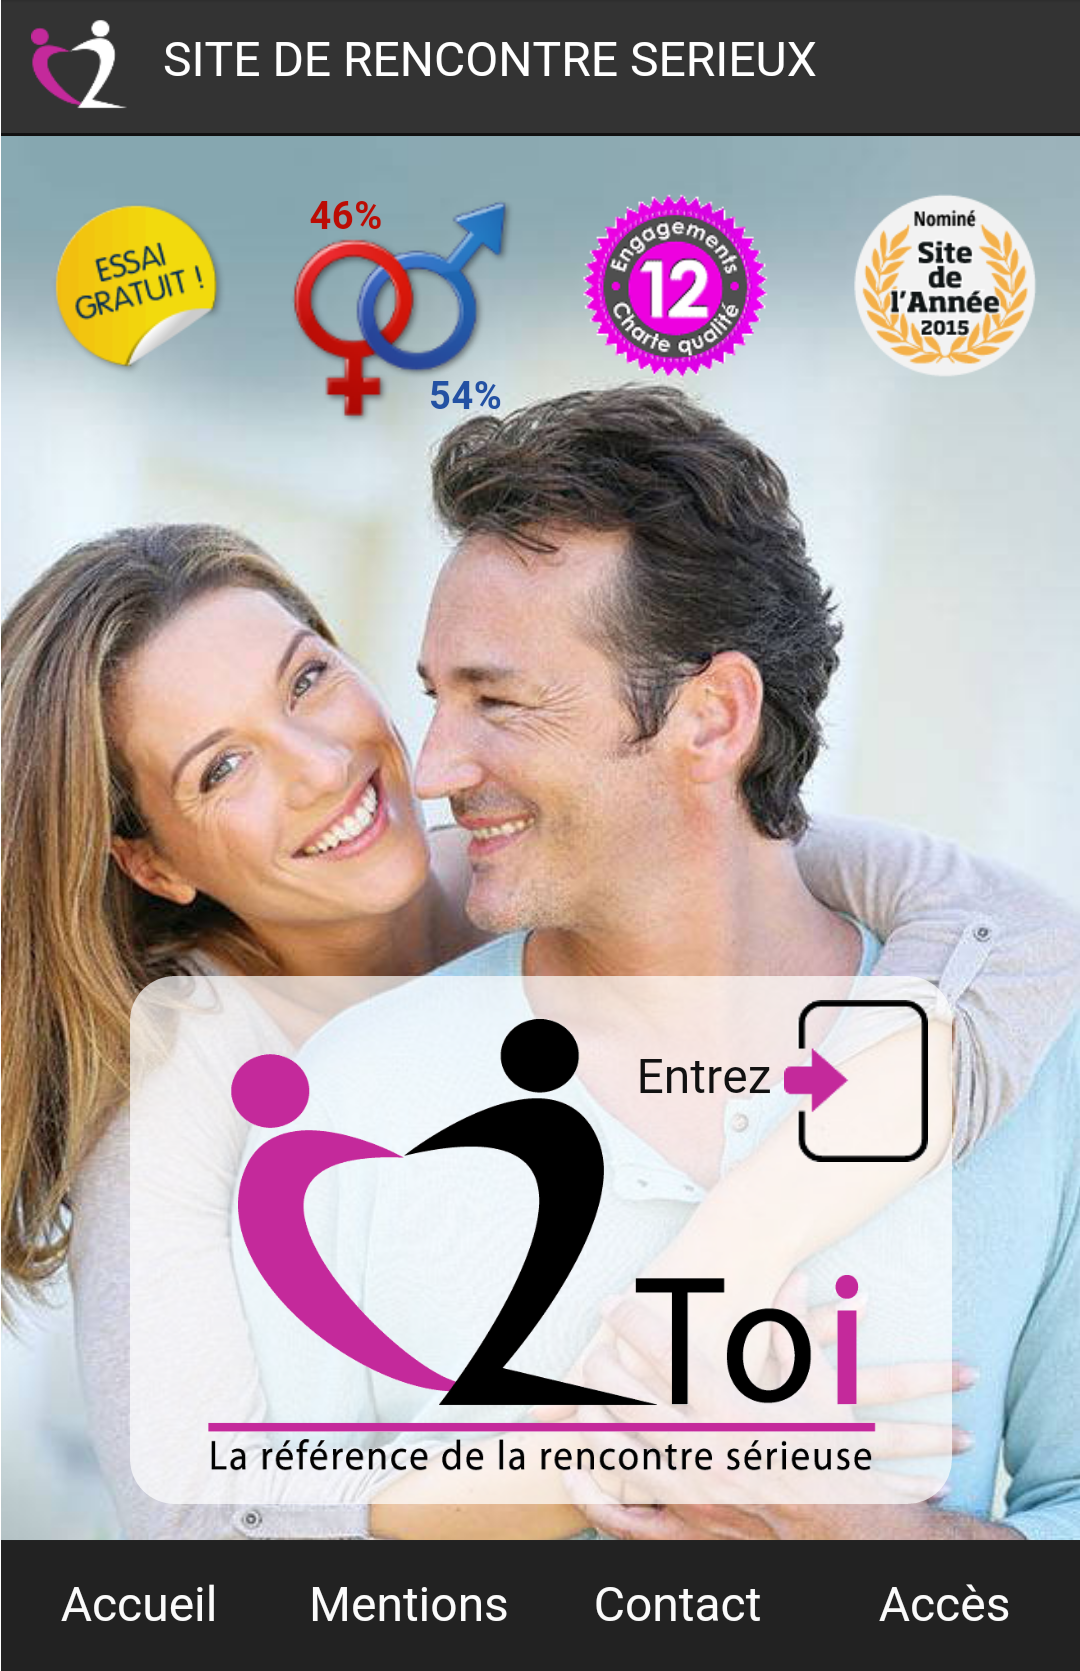 Top 10 site de rencontre